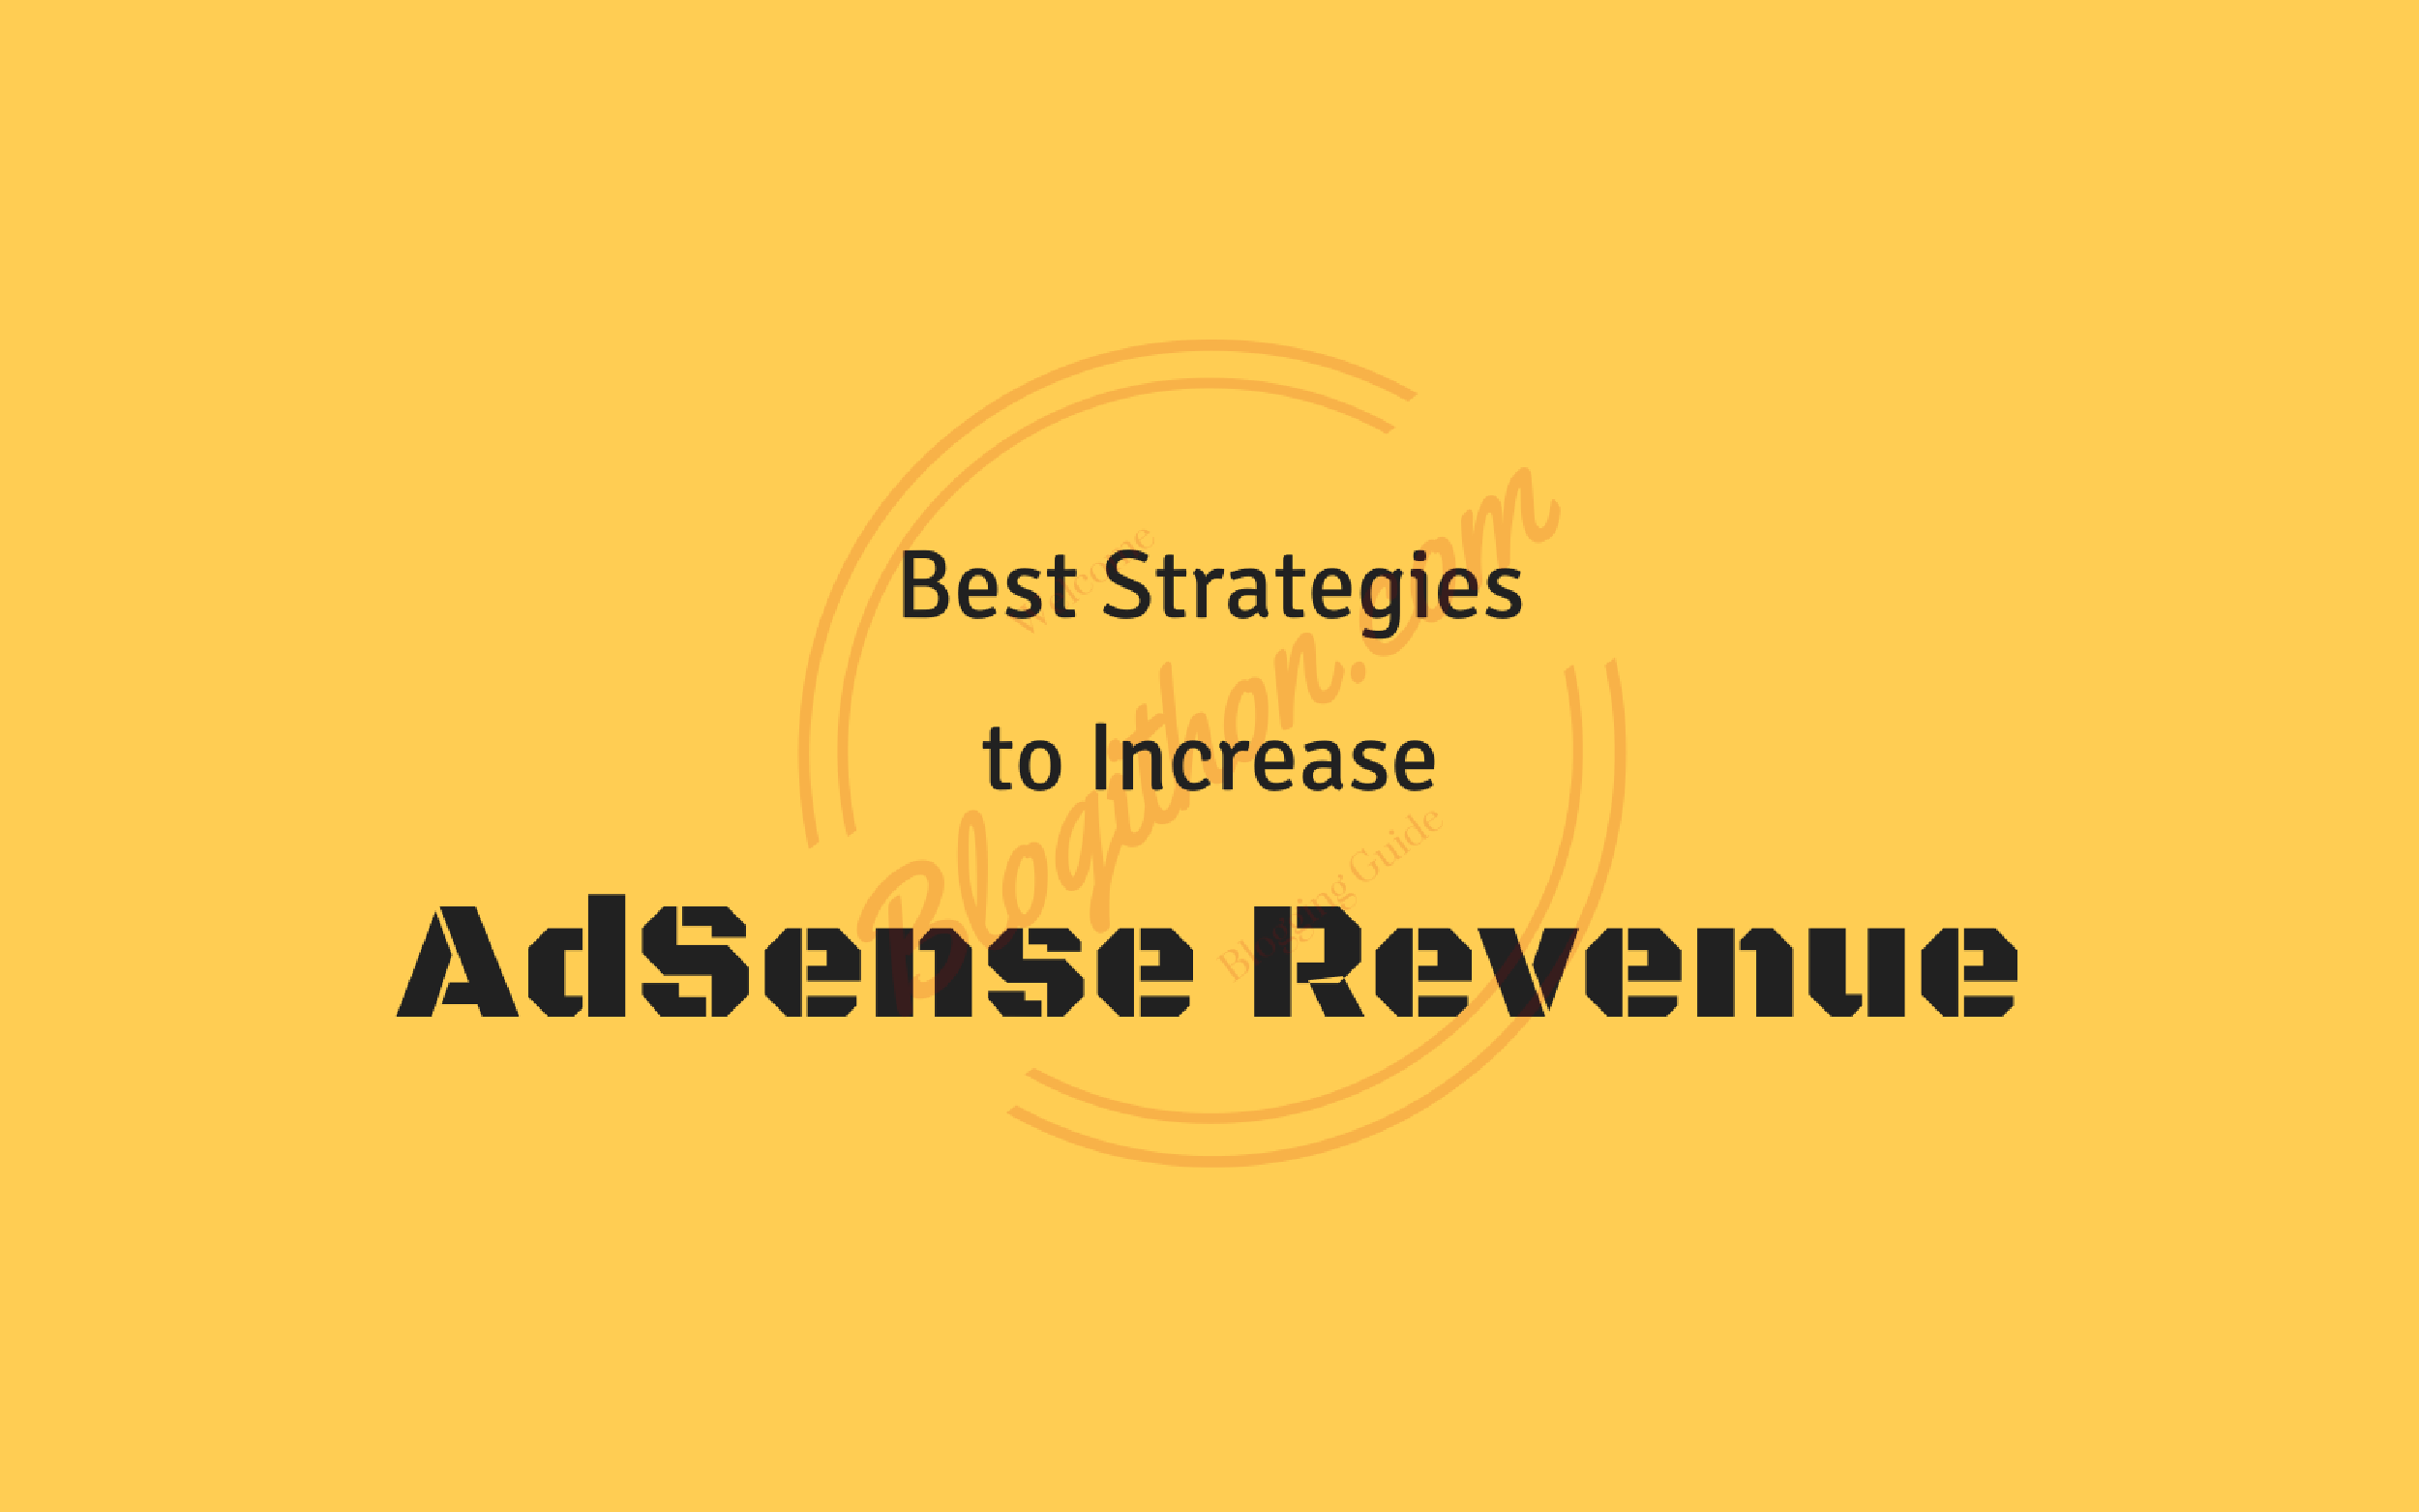 Best Strategies to increase Adsense Revenue